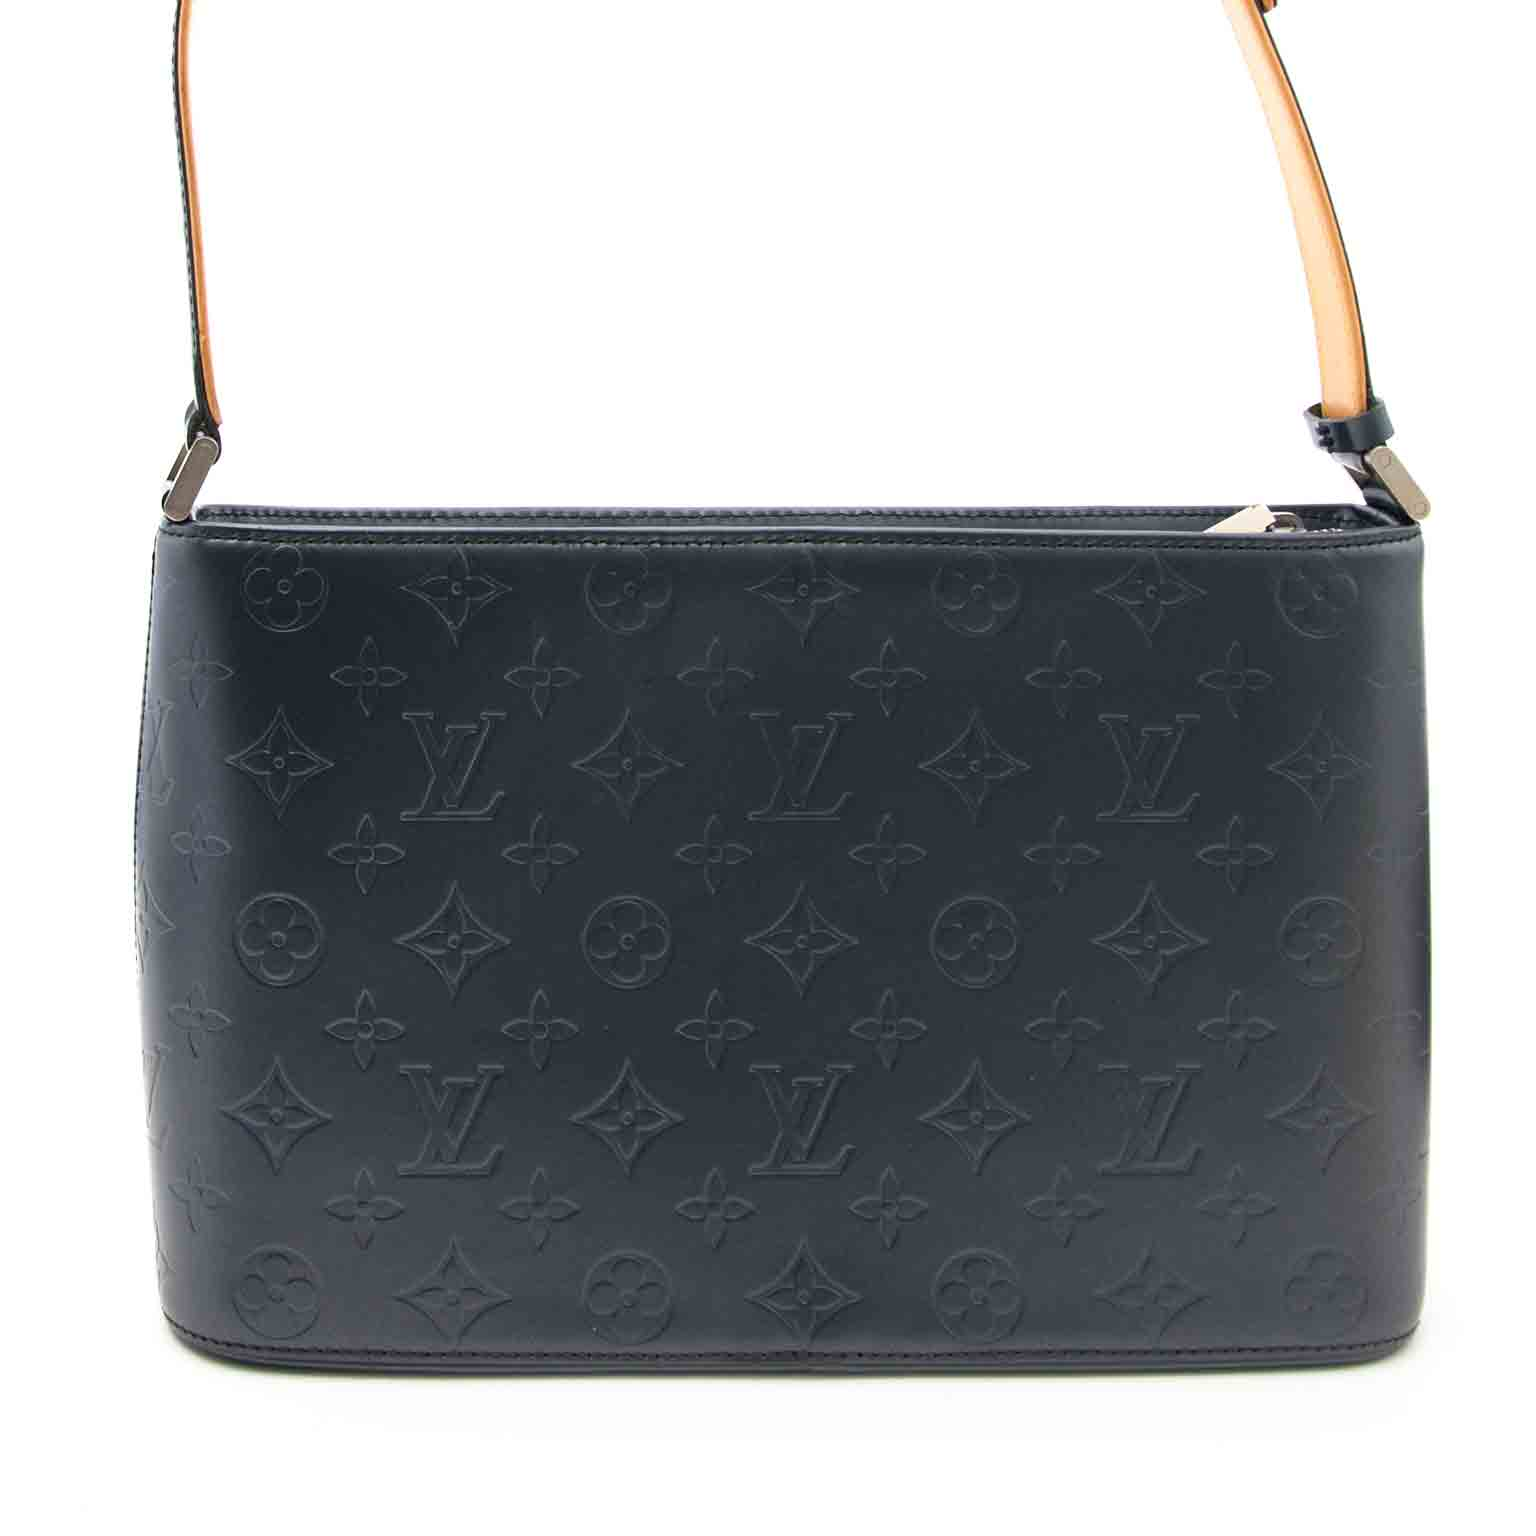 Louis Vuitton Metalgun Monogram Mat Alston Bag at a reasonable price for sale with worldwide shipping, musthave bag and from a beautiful brand Louis Vuitton, perfect condition.